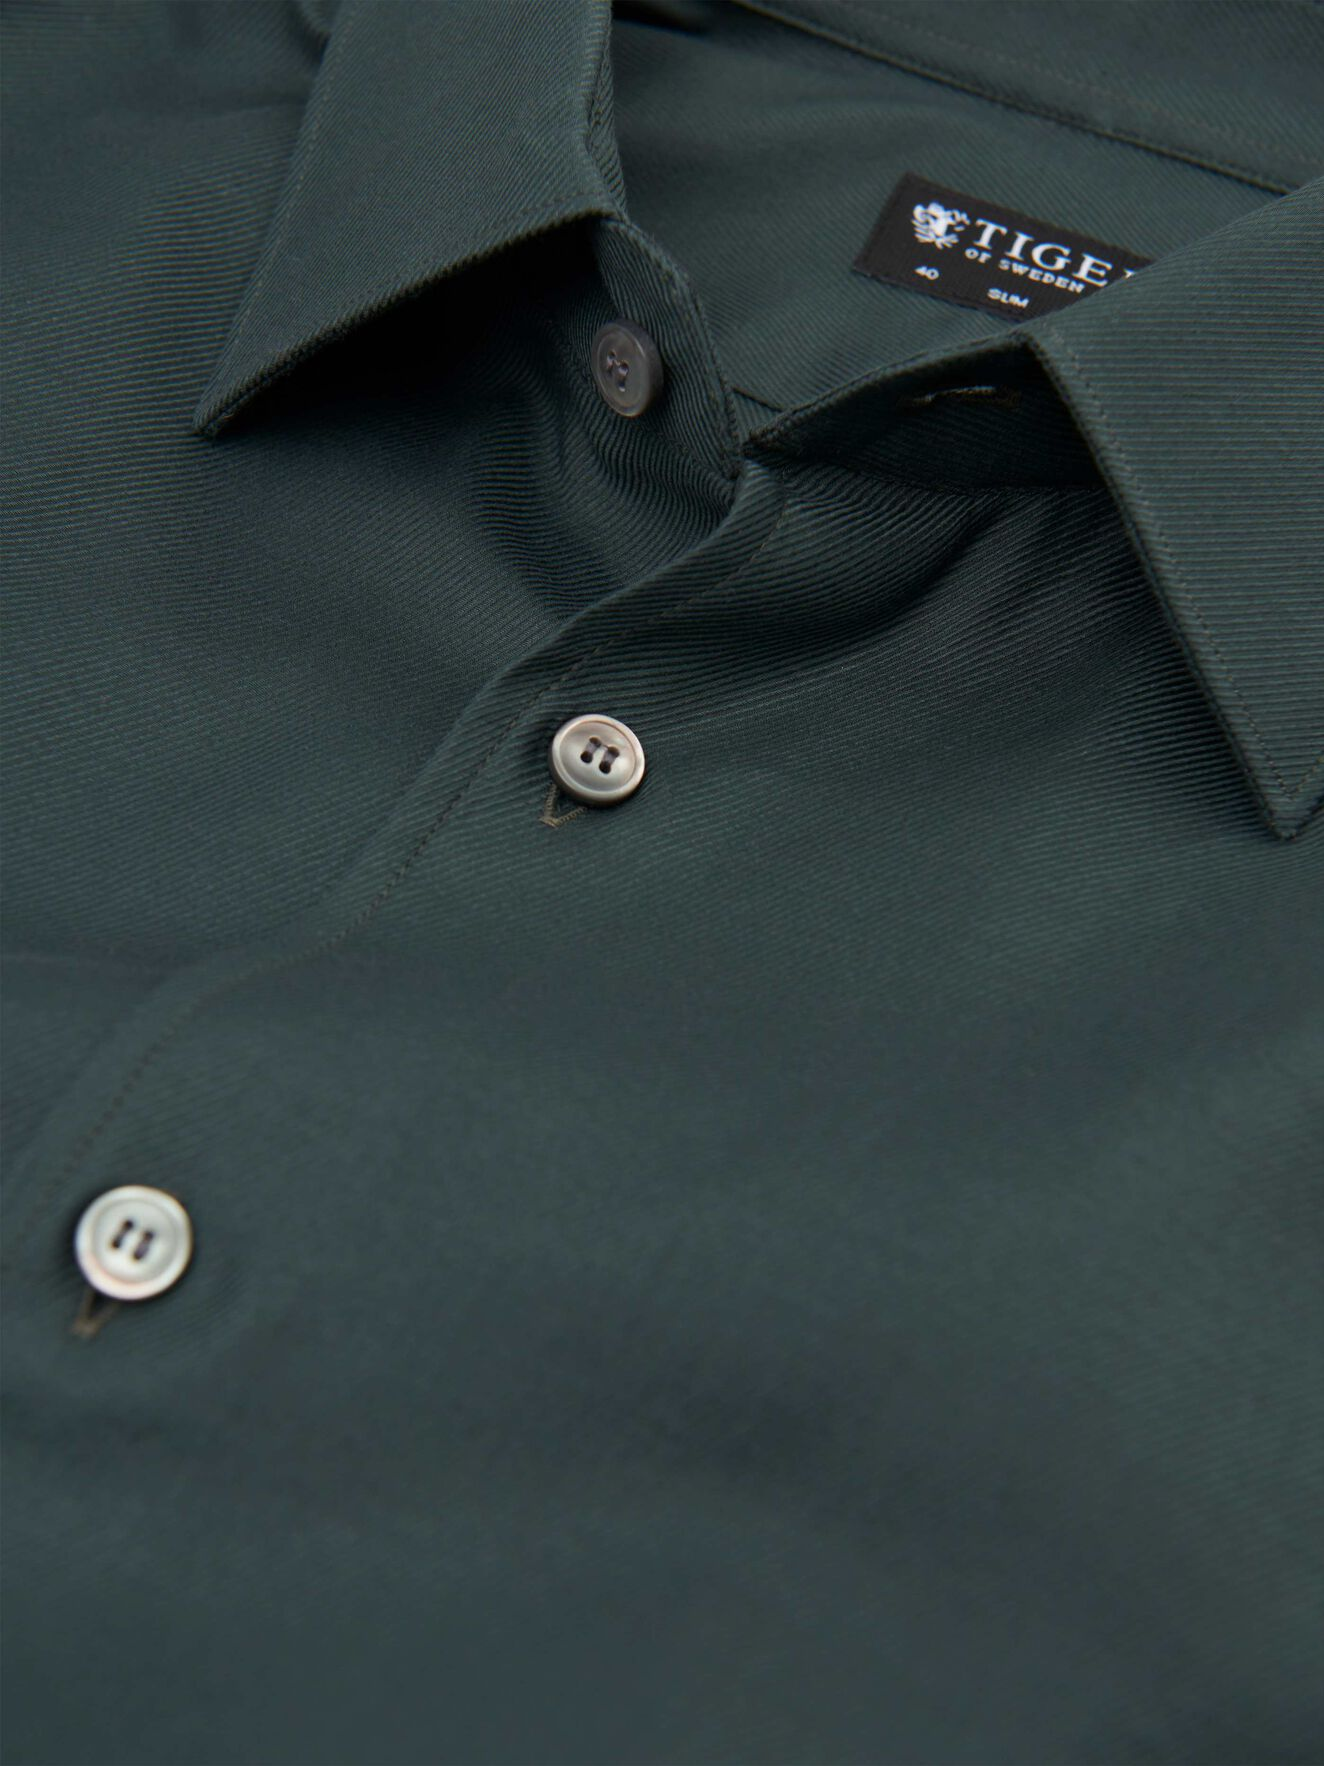 59c6f182606 ... Farrell Shirt in Wood Green from Tiger of Sweden